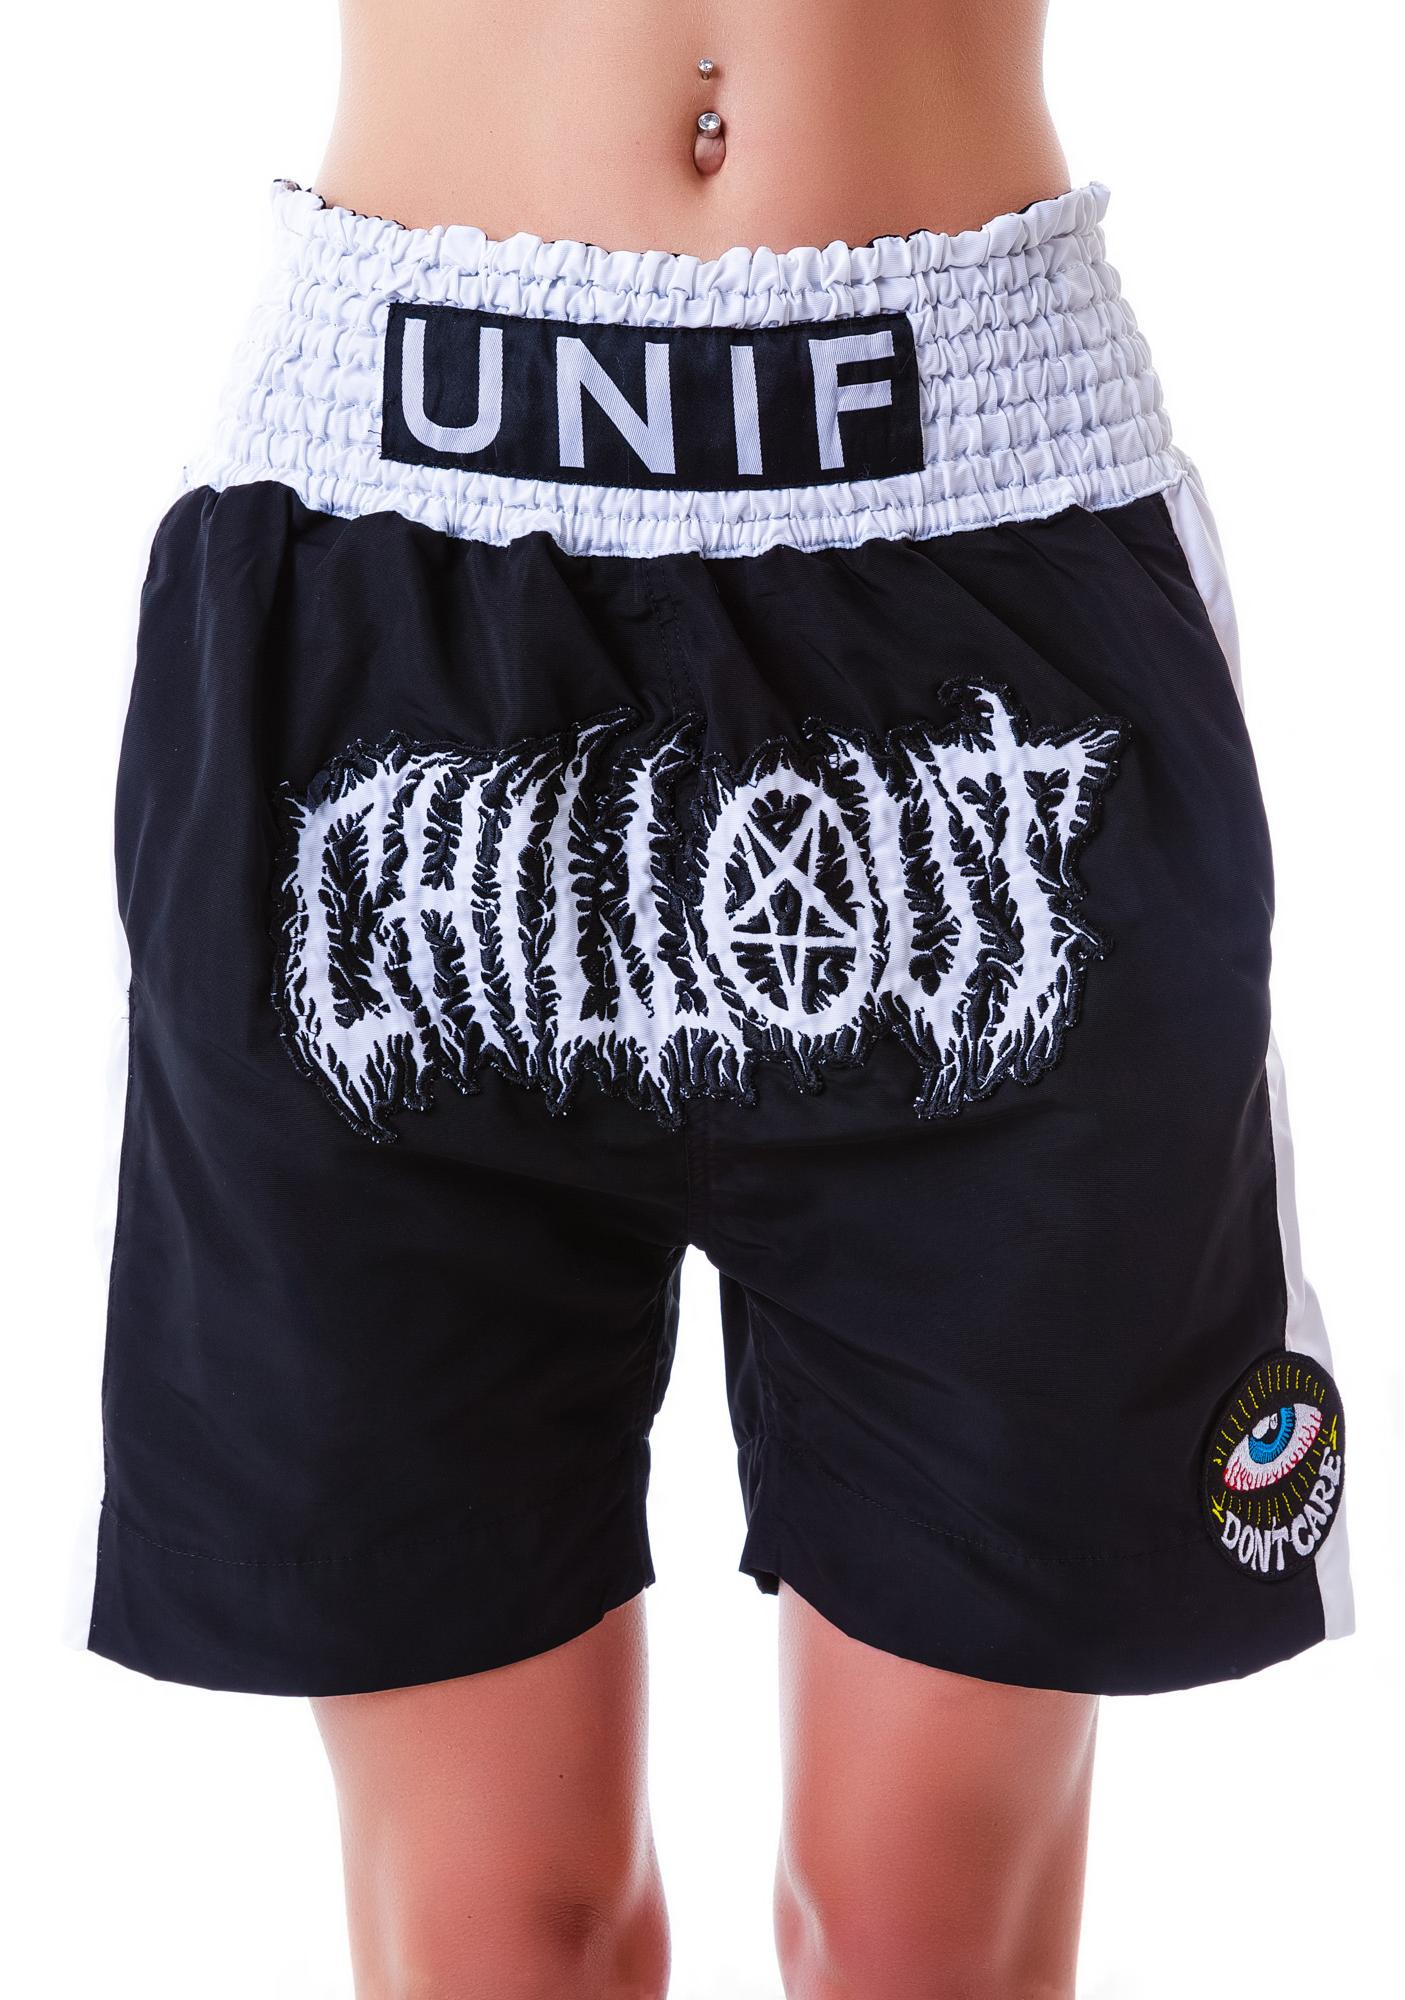 UNIF Chillout Shorts